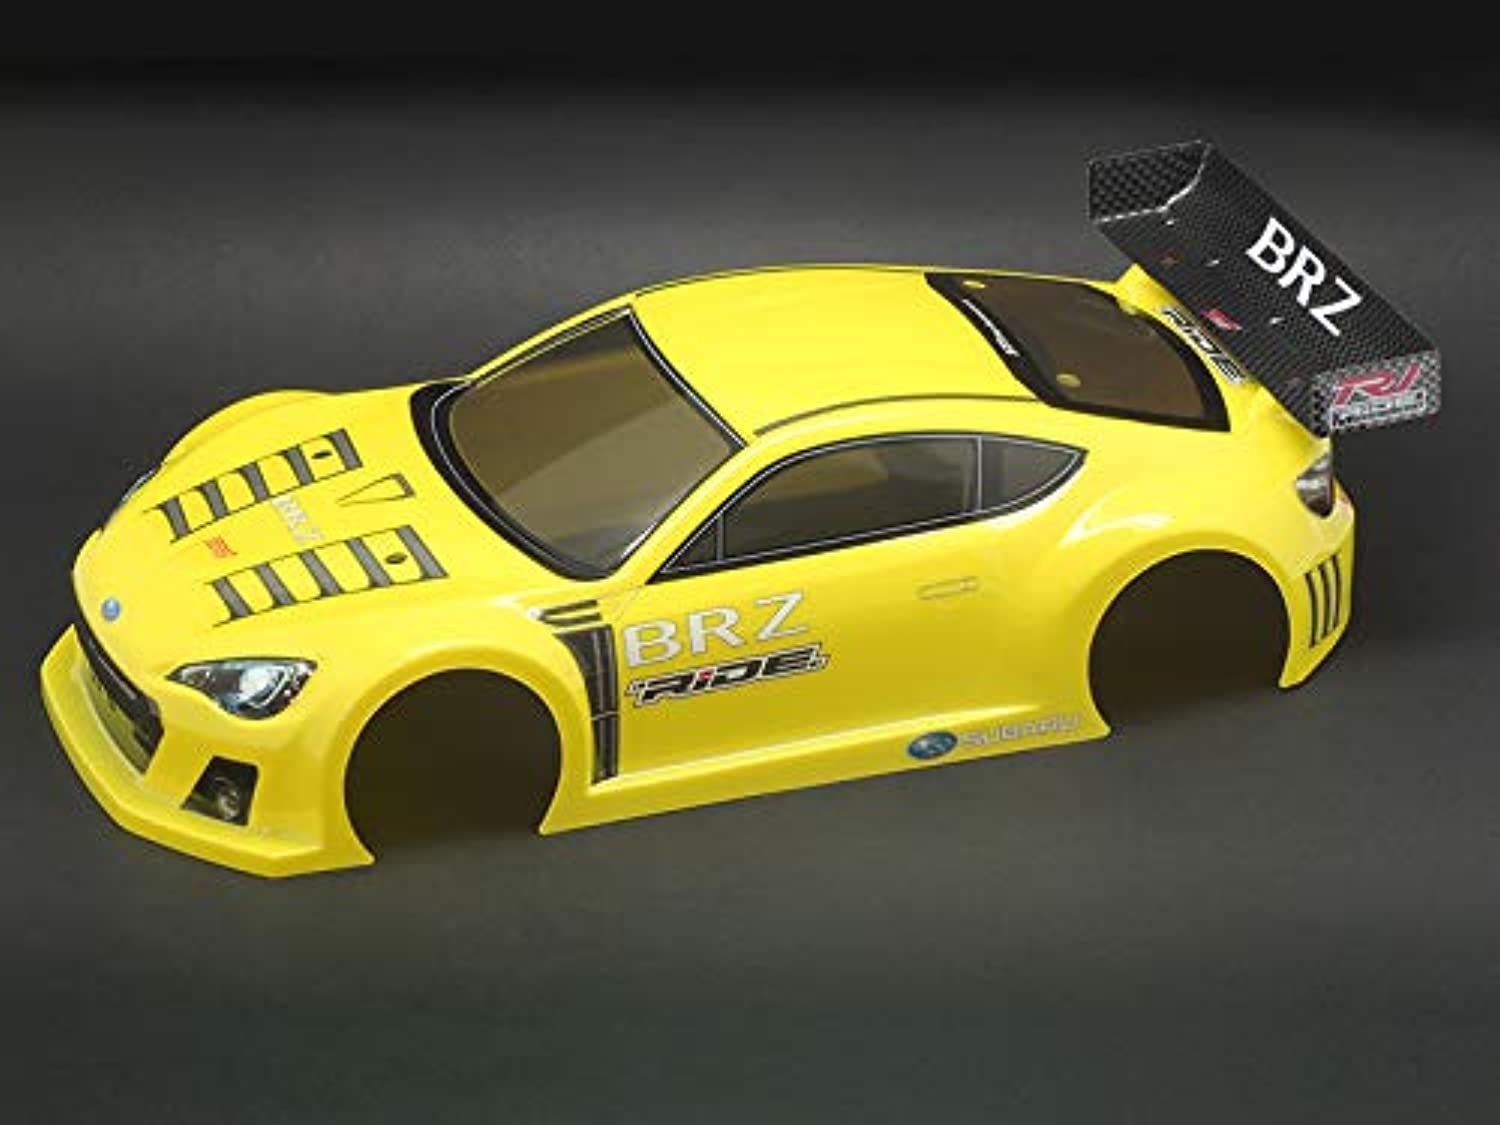 Ride RC Model Hop-ups RIDE-27028 RIDE M-Chassis Subaru BRZ Race Car Concept Body (Fluorescent Yellow)